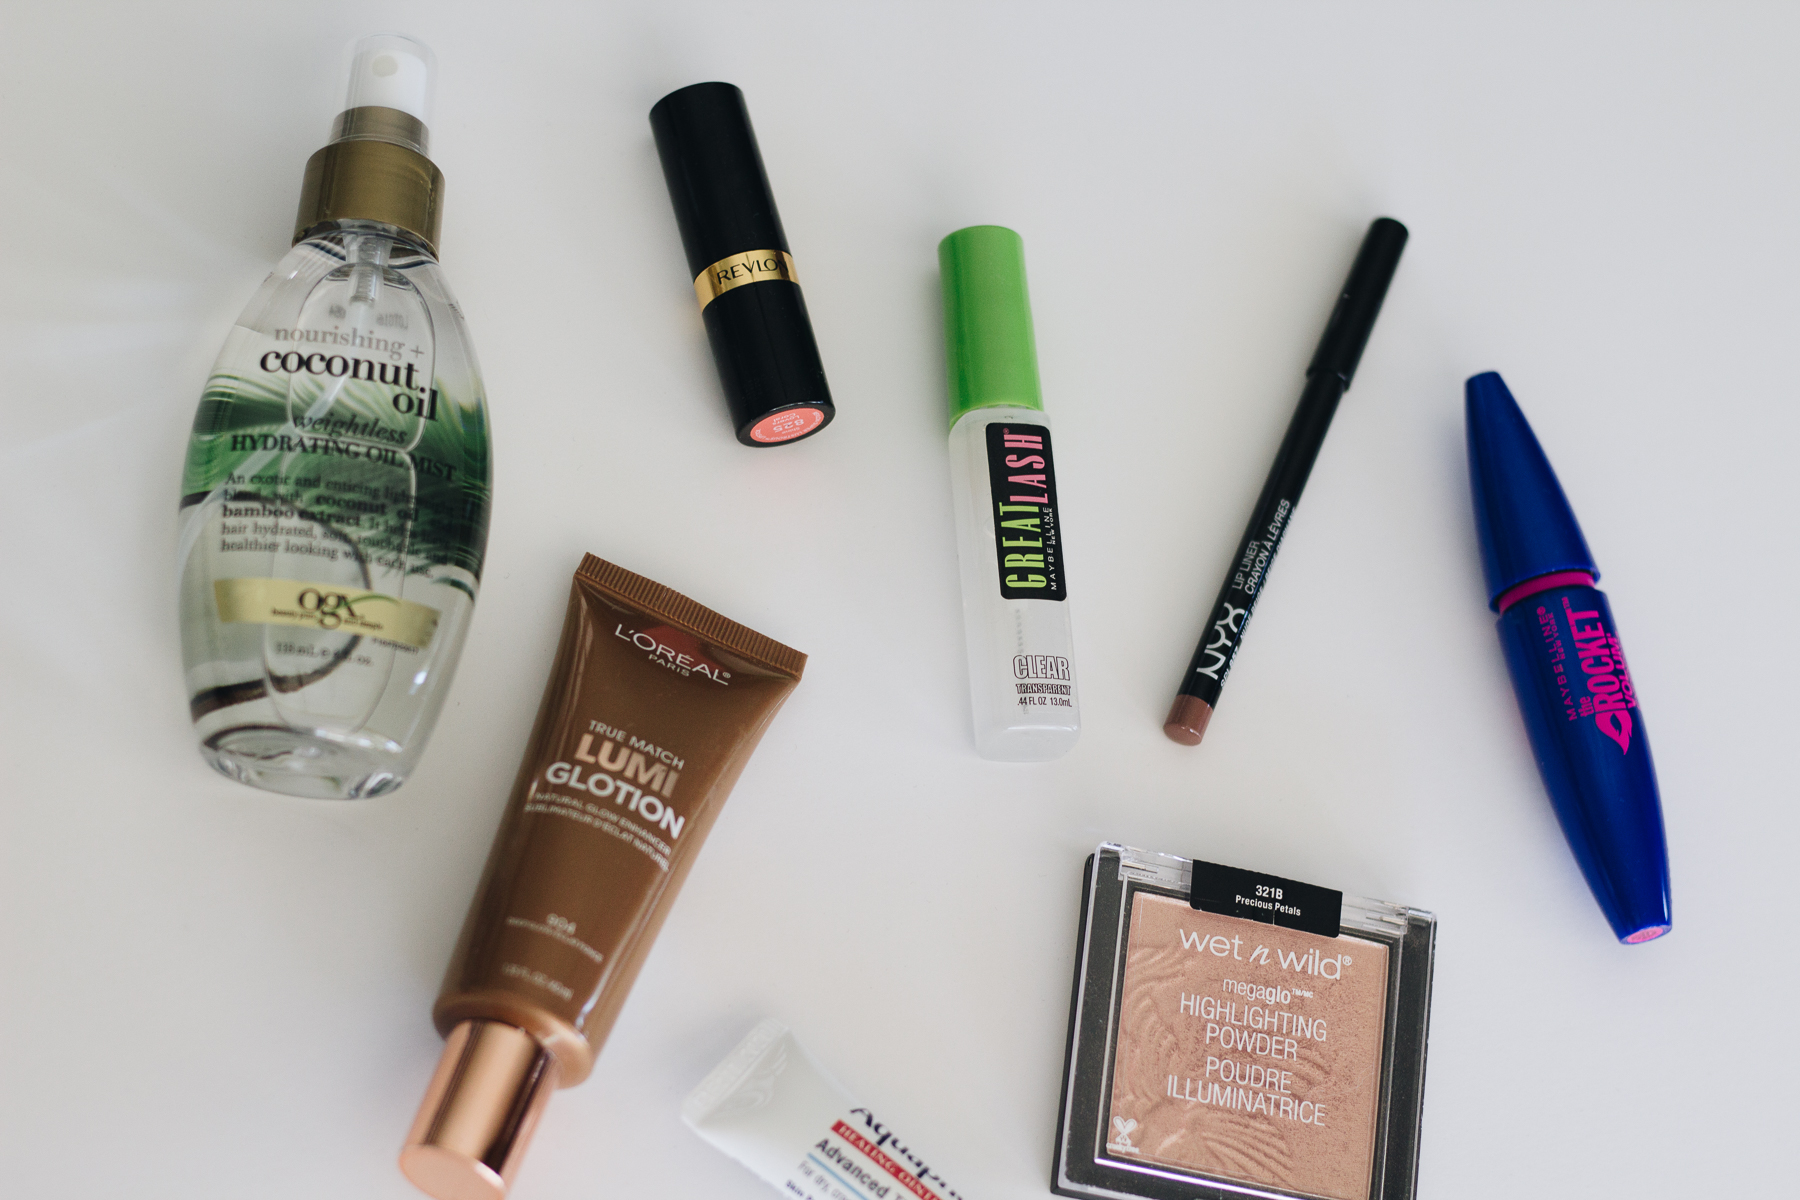 The Best Drugstore Beauty Buys Under $10